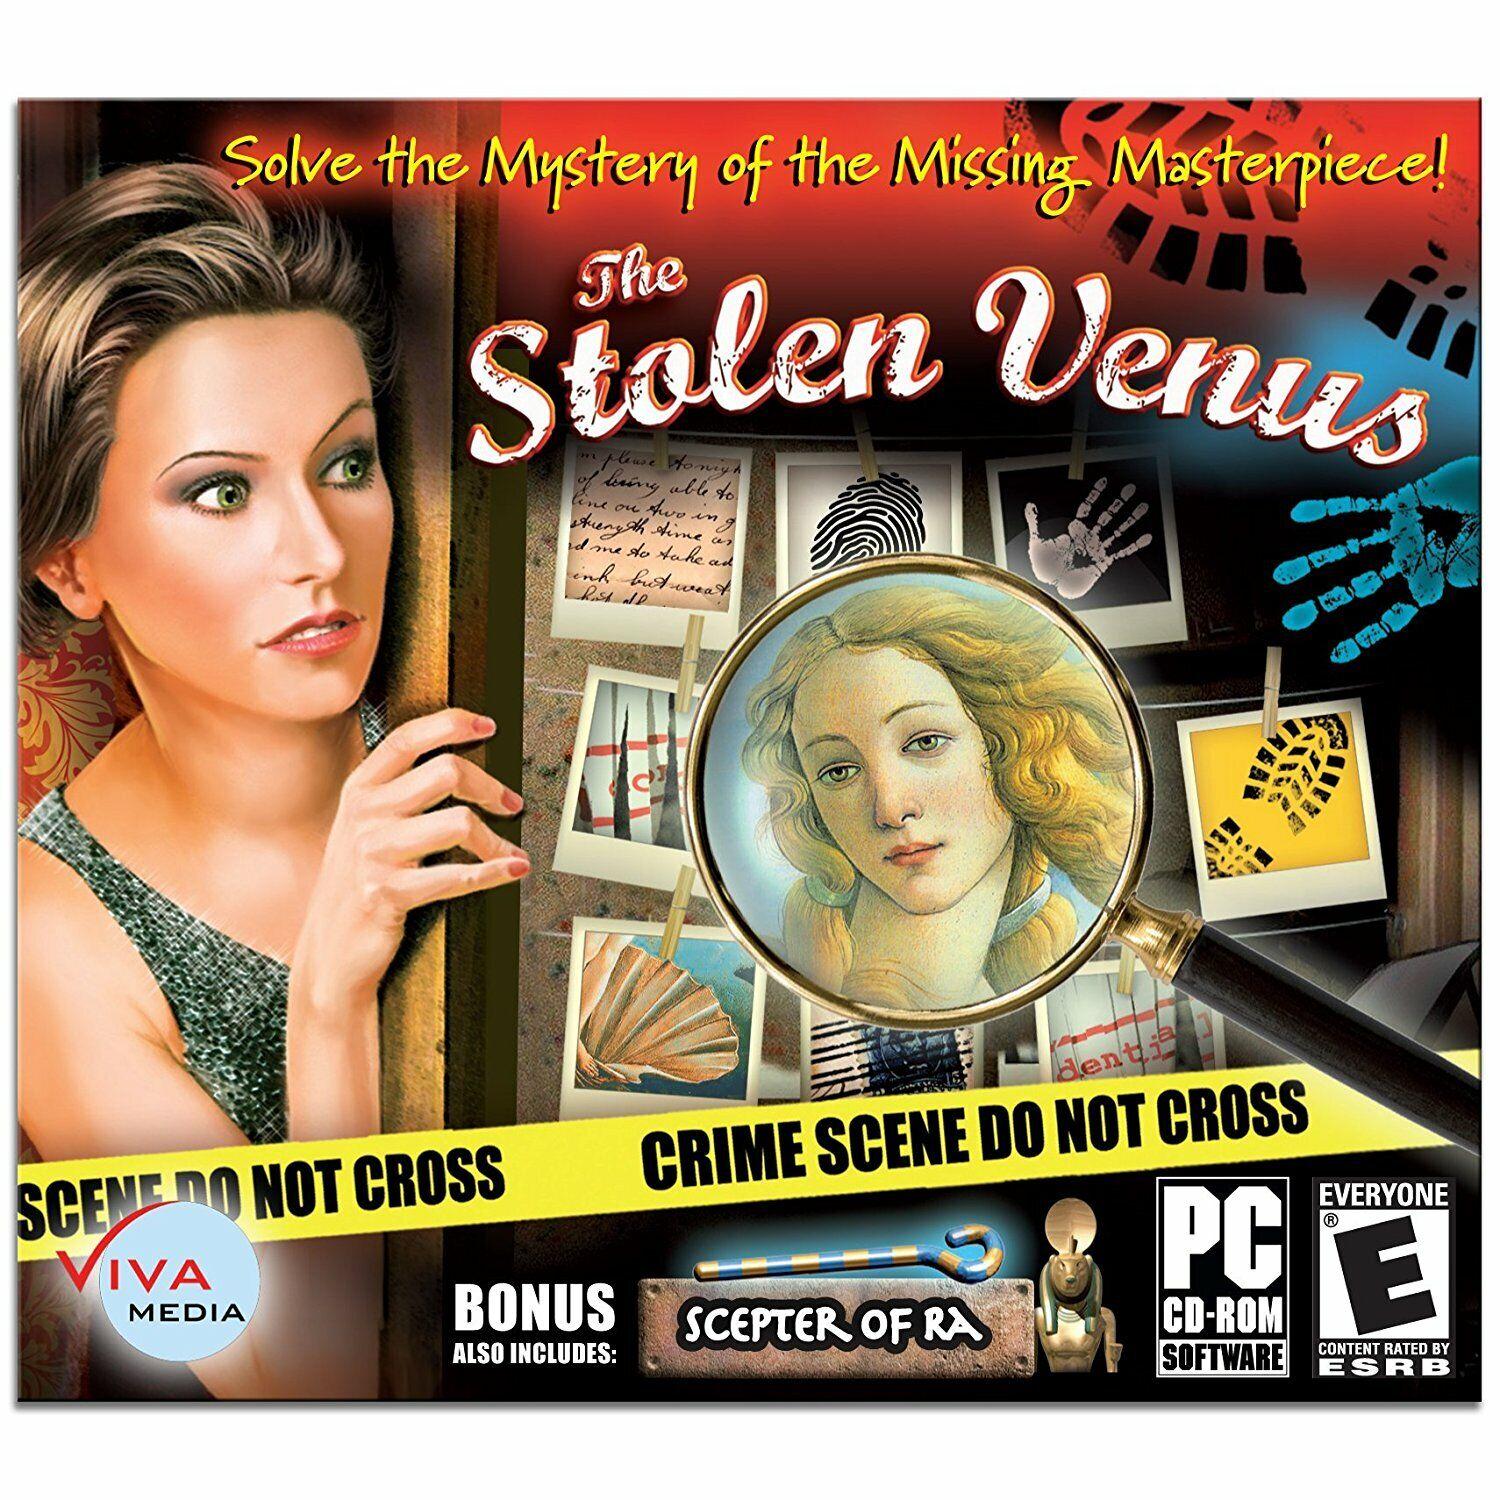 Computer Games - The Stolen Venus PC Games Windows 10 8 7 XP Computer hidden object mystery seek